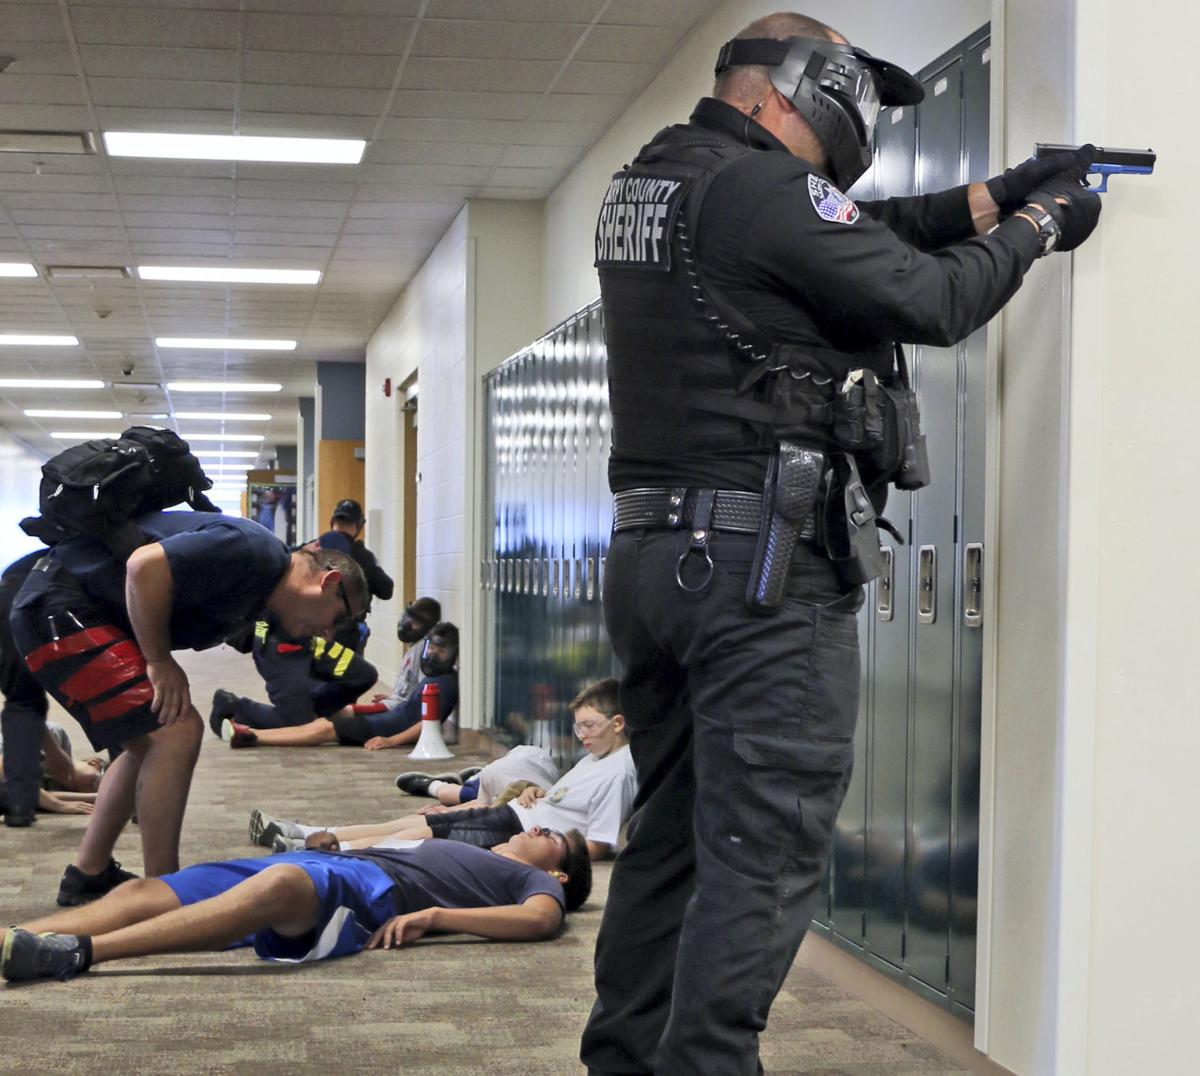 School Shooting Because Of Video Games: Rescue Task Force Trains For Active Shooter Incidents